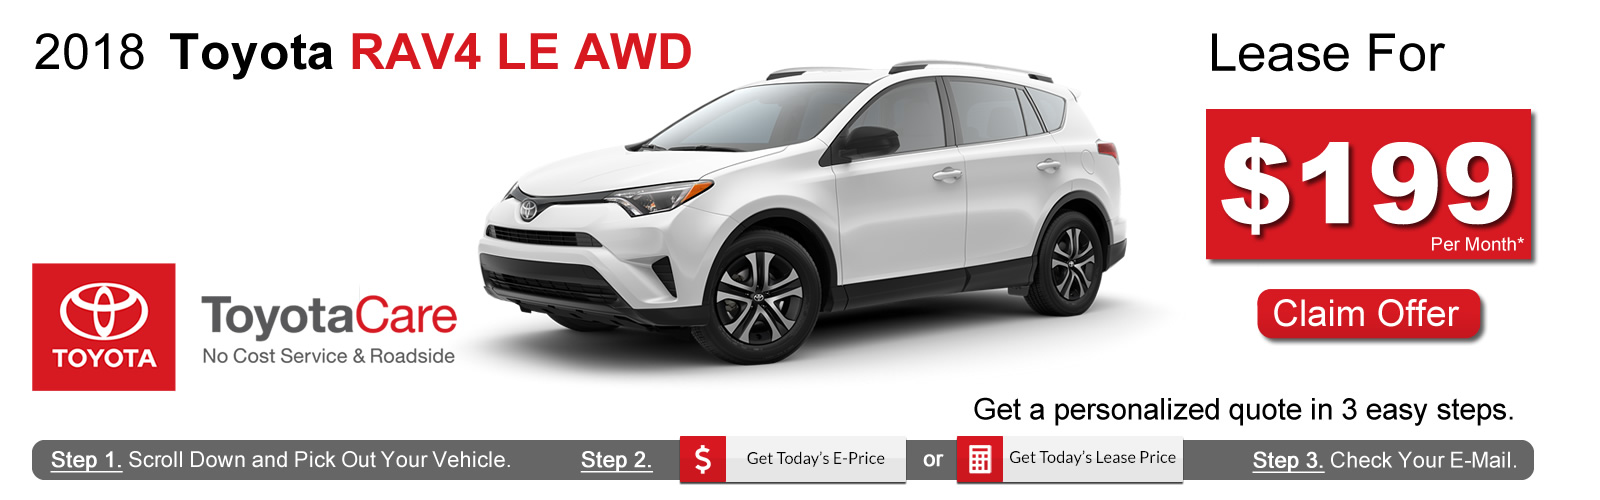 2018 Toyota RAV4 Lease Deals near Boston, MA